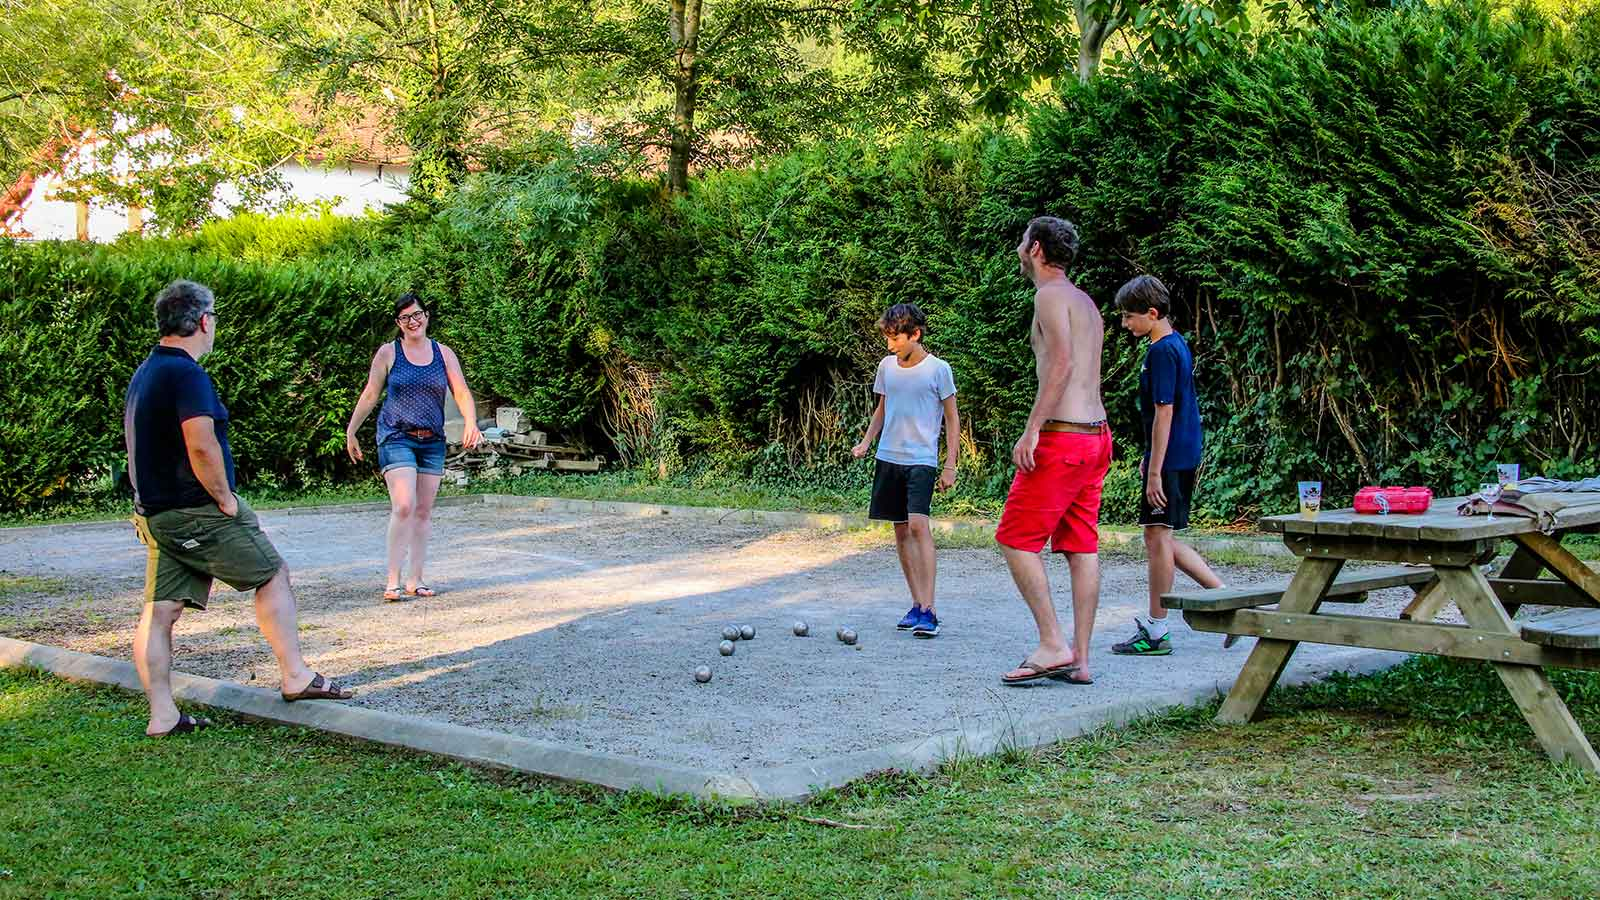 Camping pays basque vacances camping maul on caravaning for Camping au pays basque avec piscine